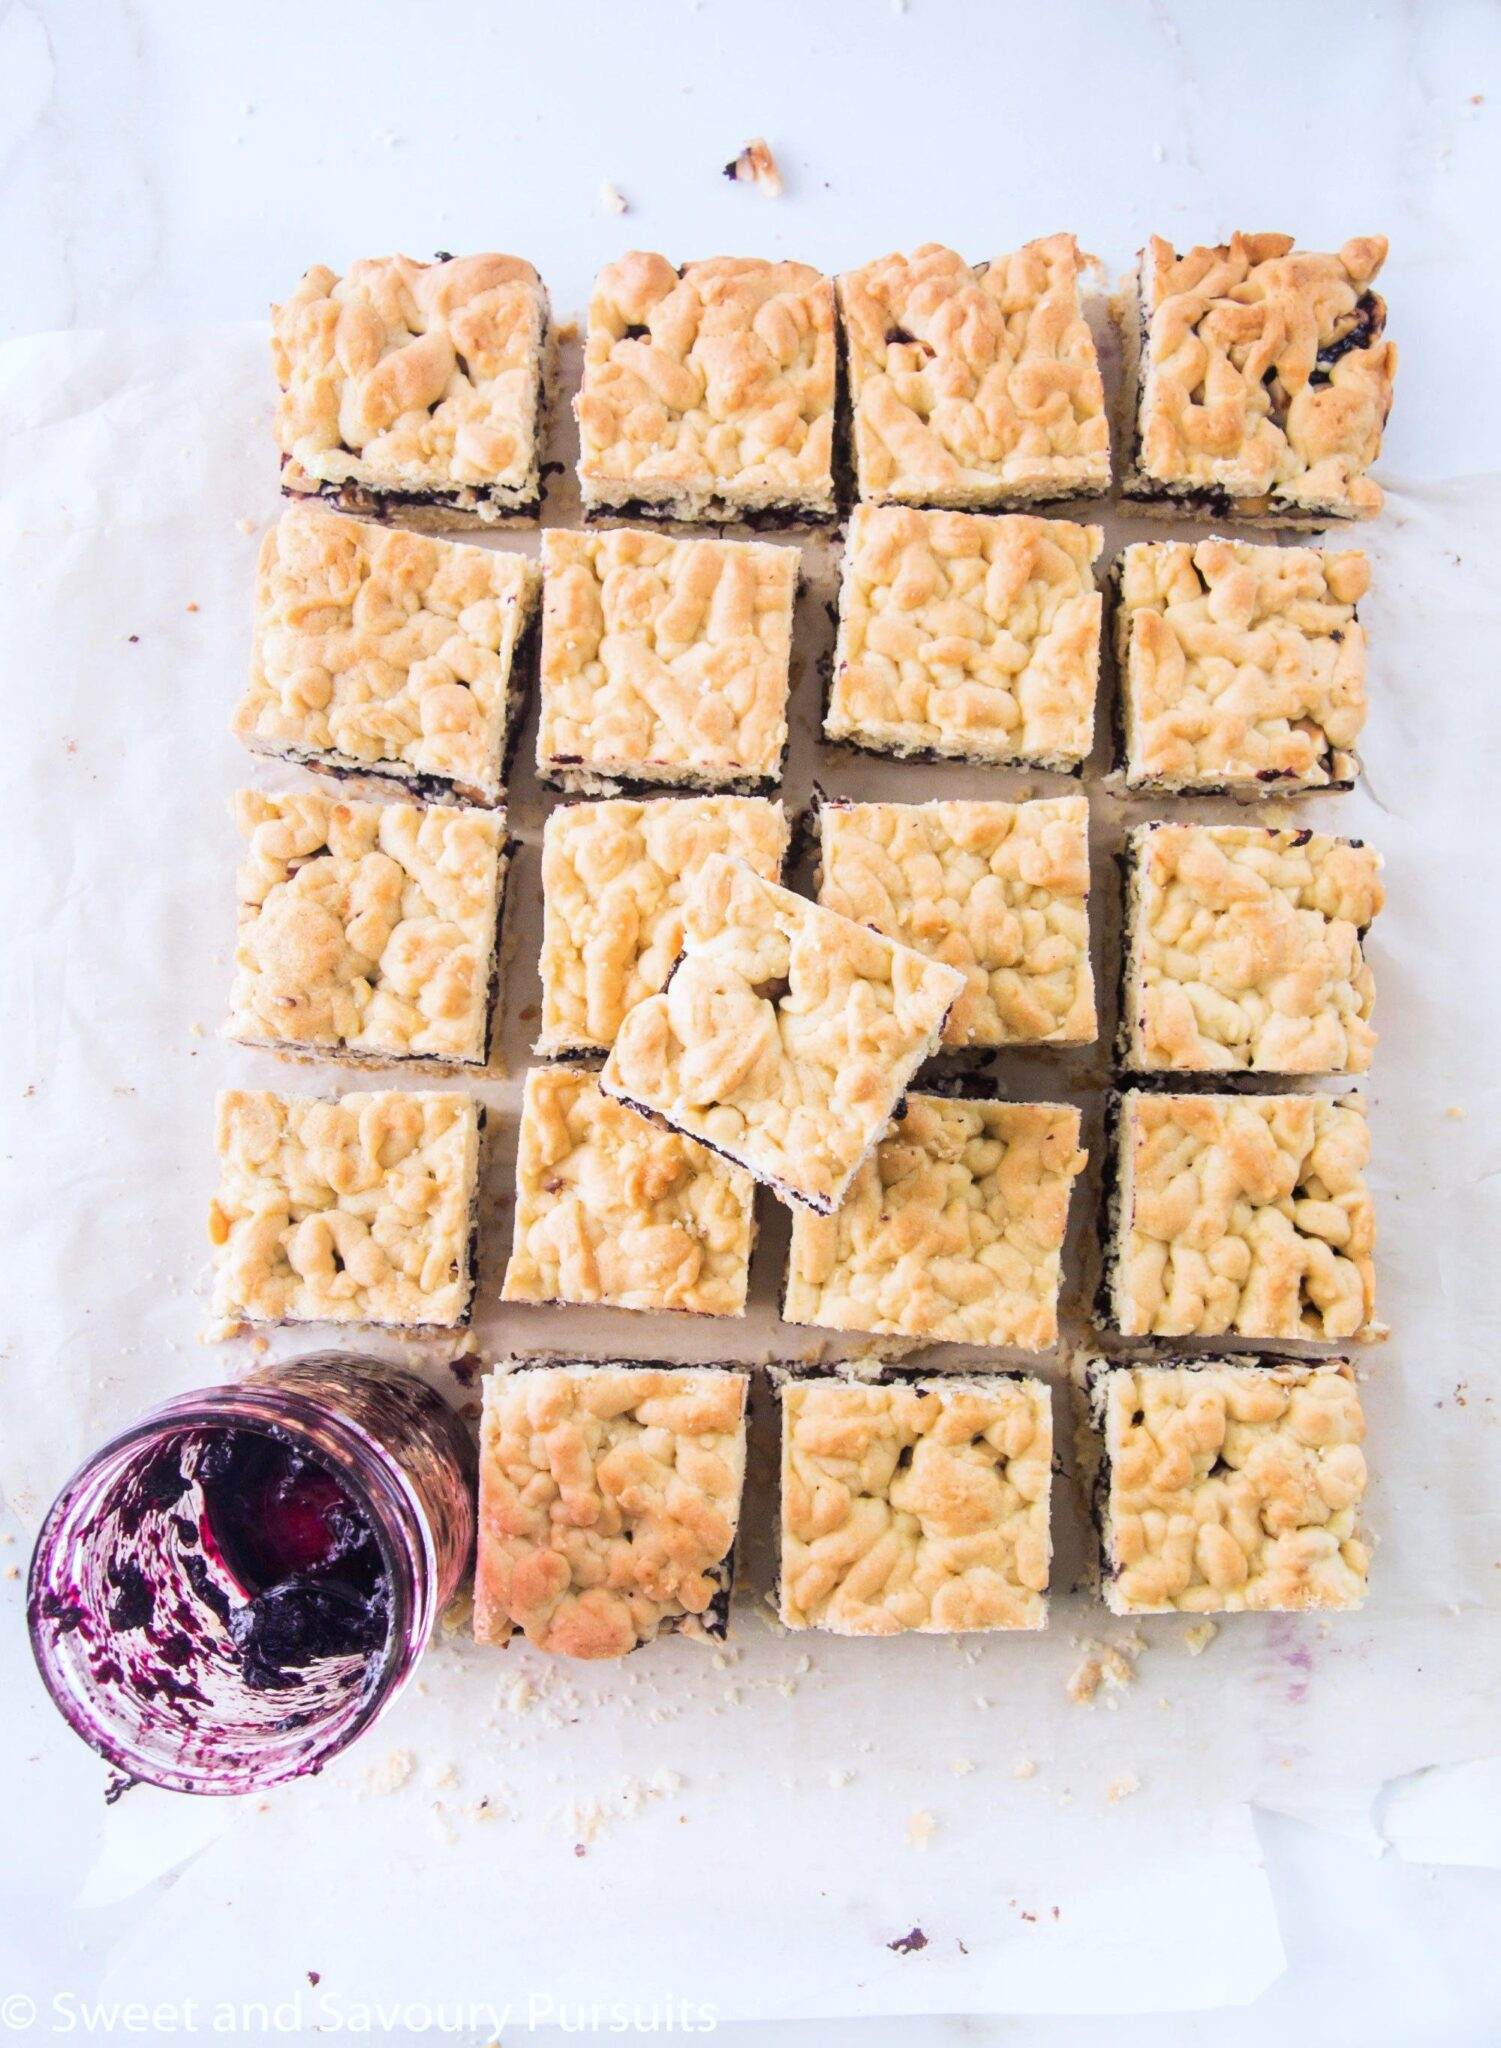 Top view of blueberry jam and hazelnuts bars.